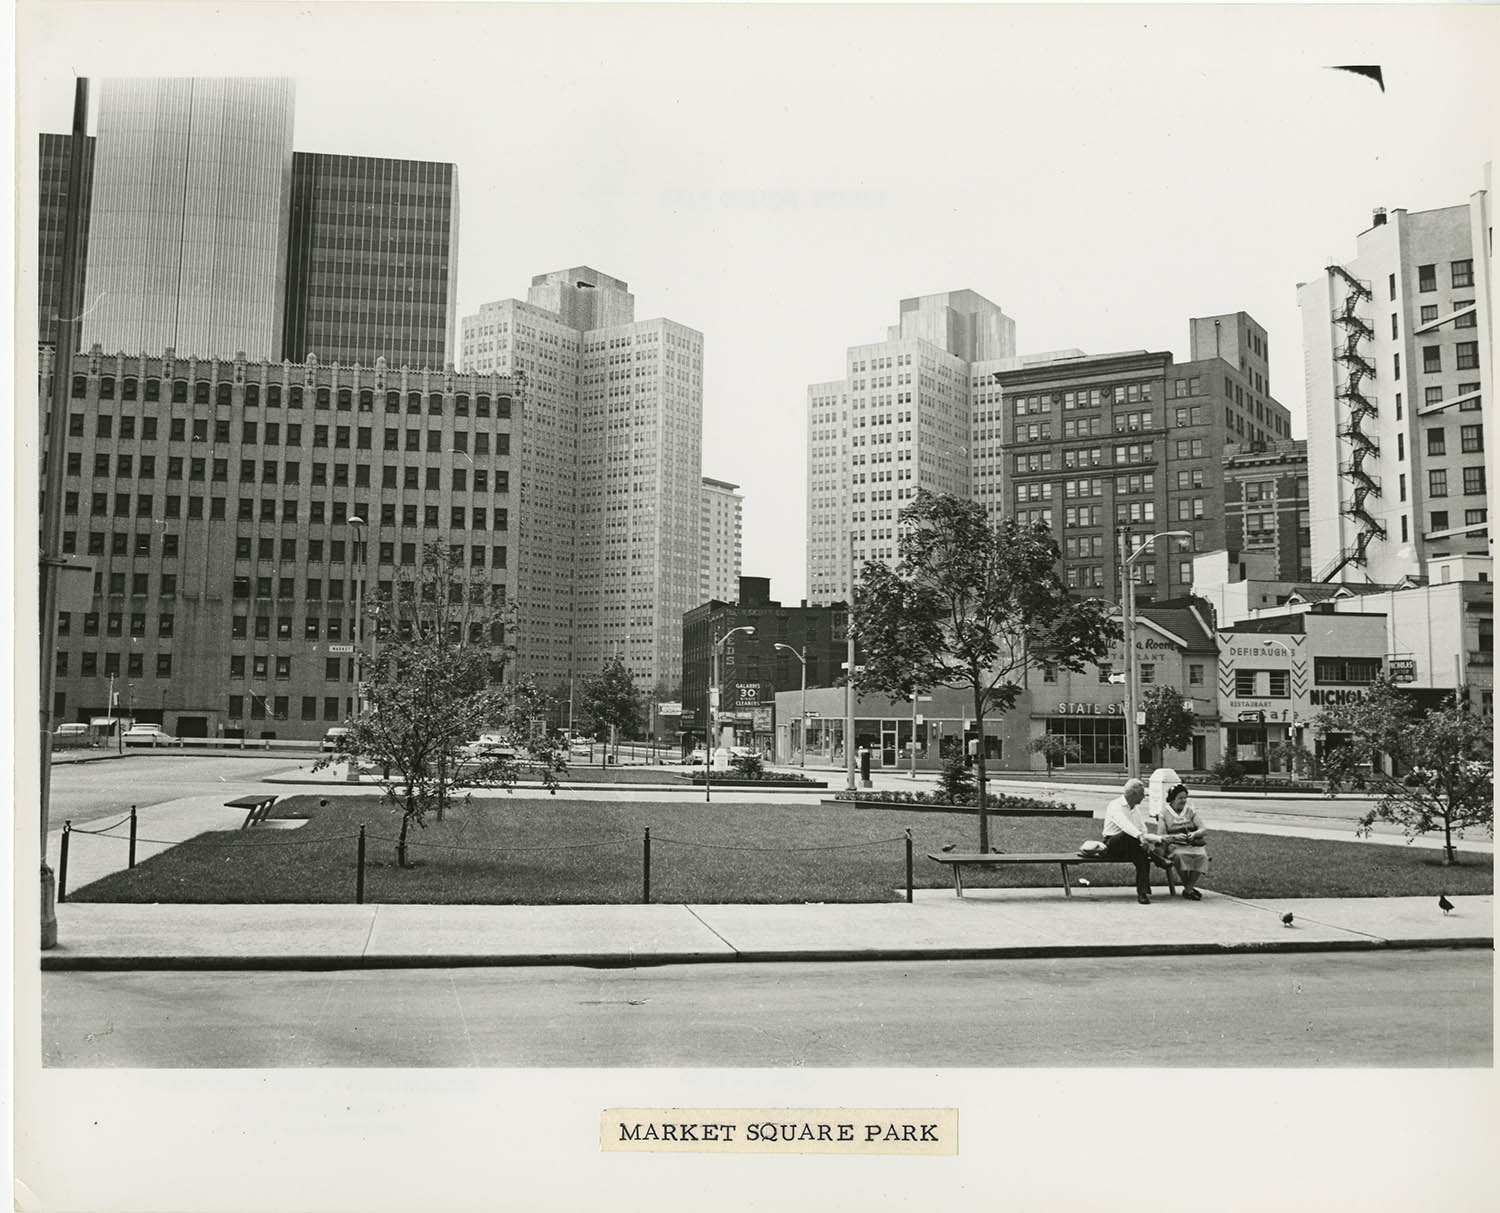 Detail showing one of the quadrants of the new Market Square Park, July 1964.